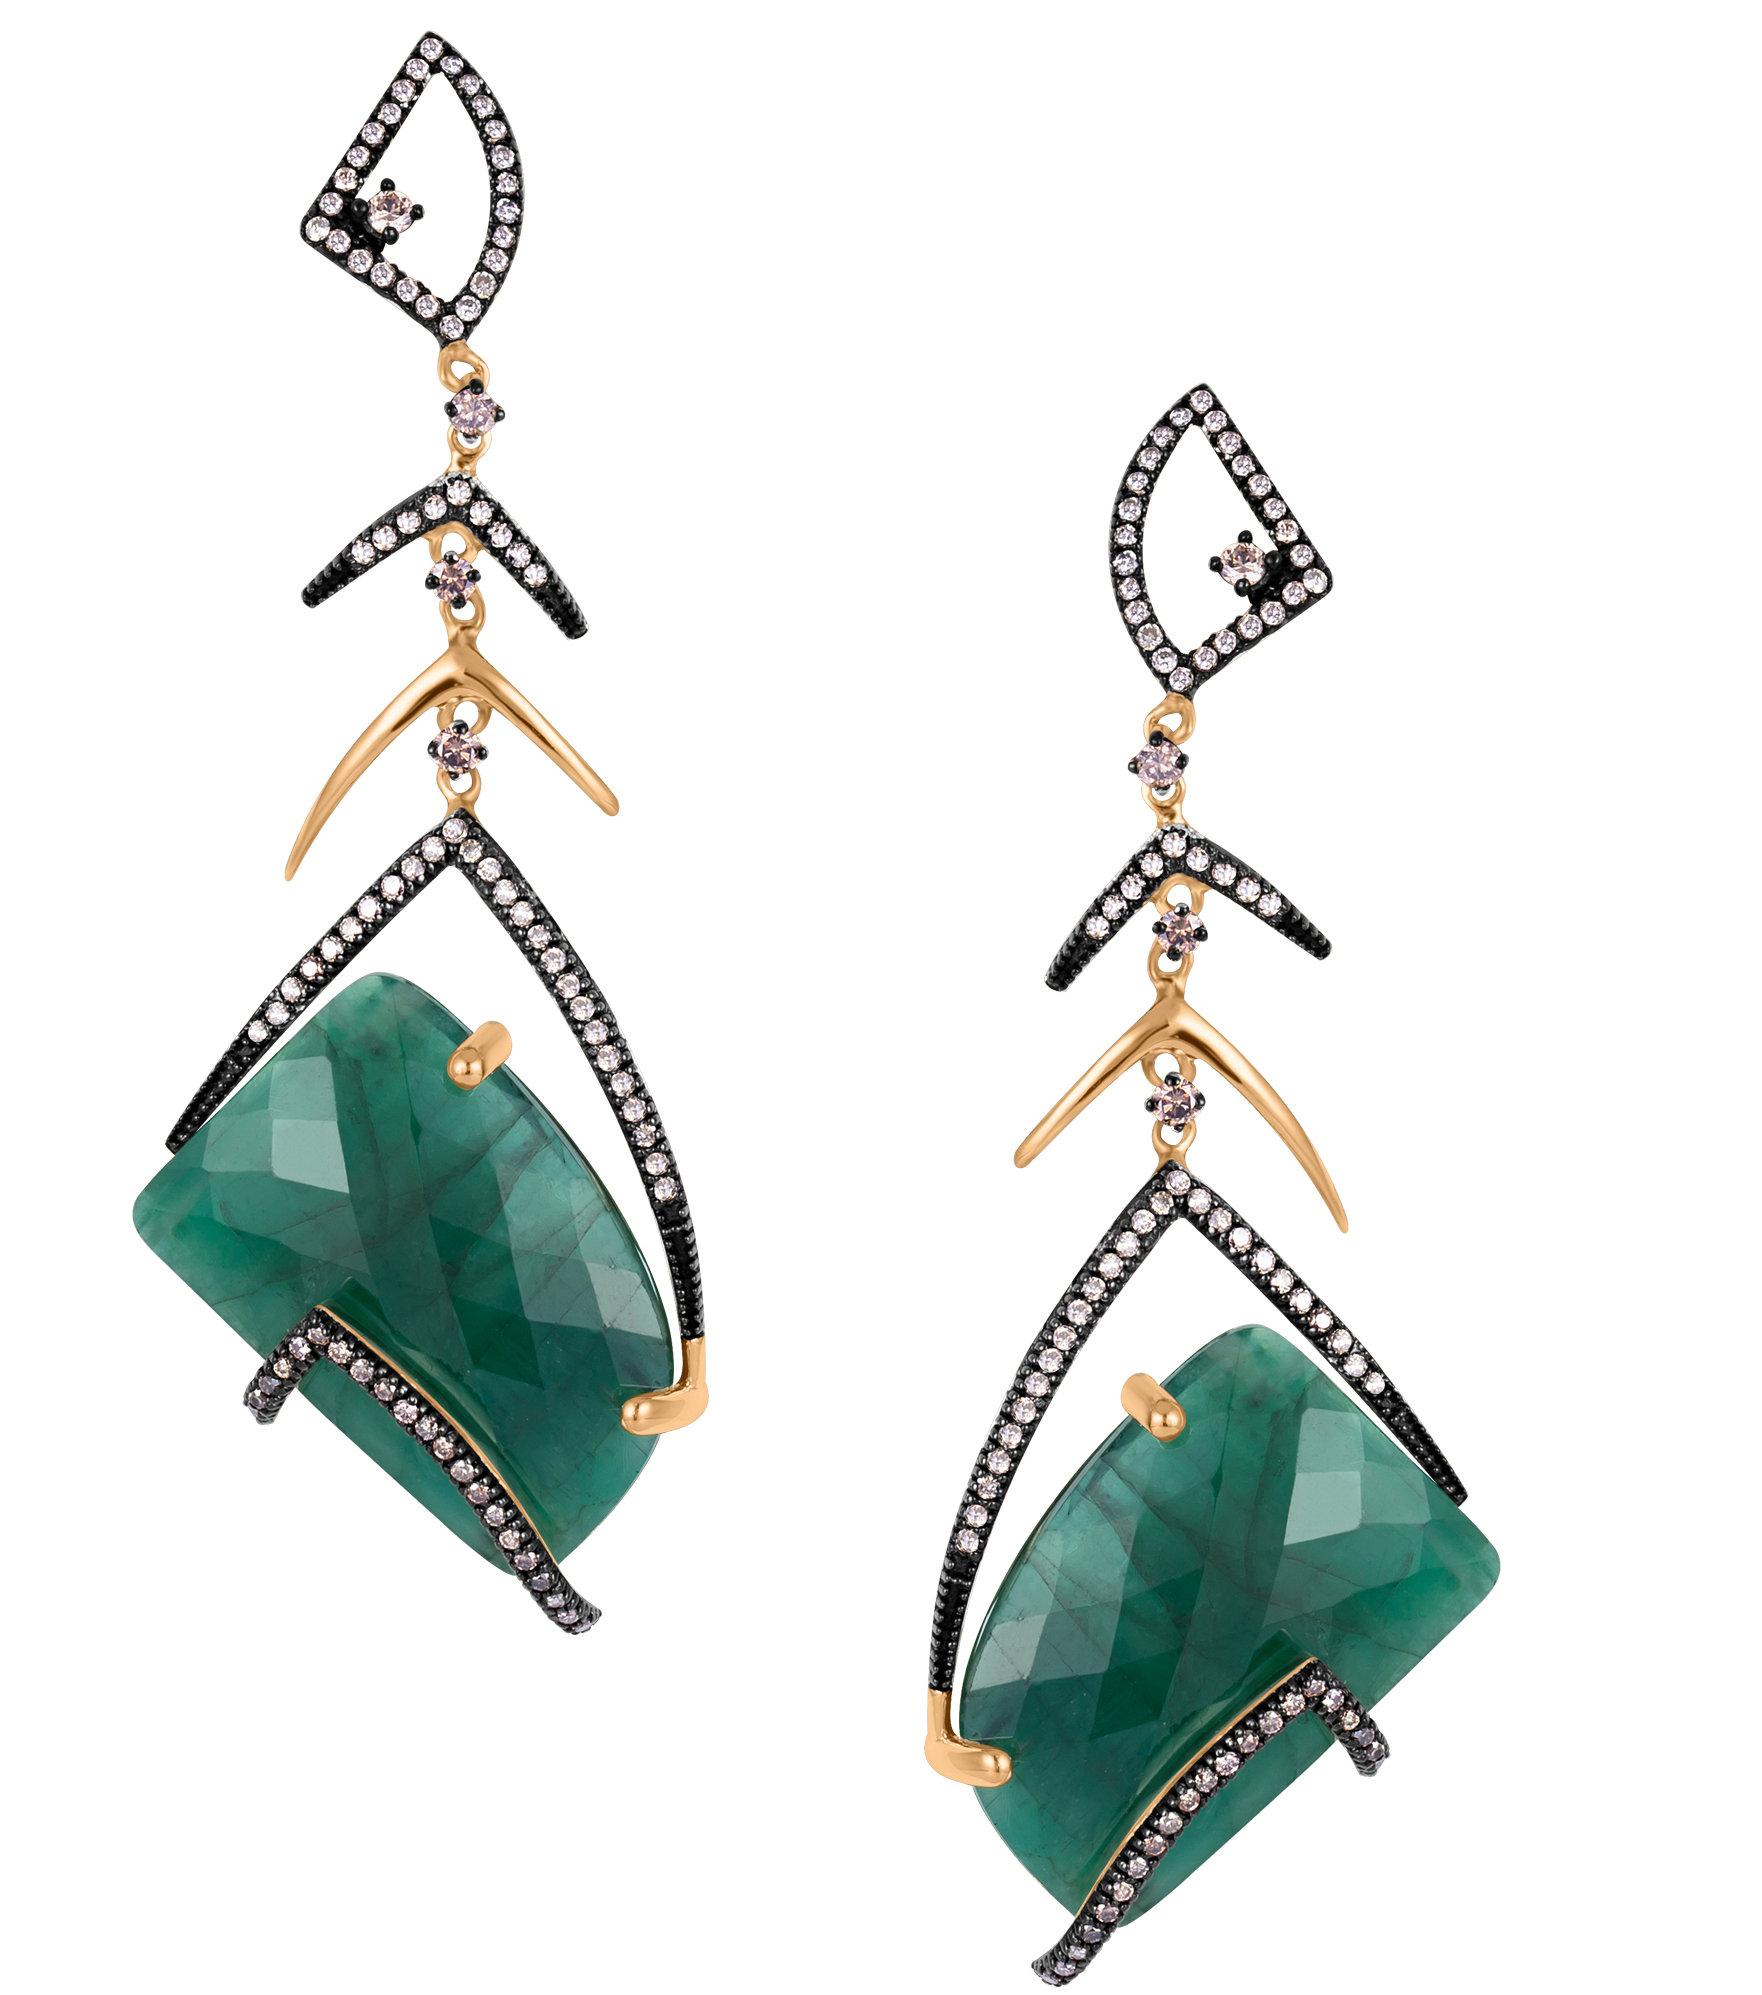 Arya Esha one-of-a-kind emerald earrings #BrittsPick | JCK On Your Market